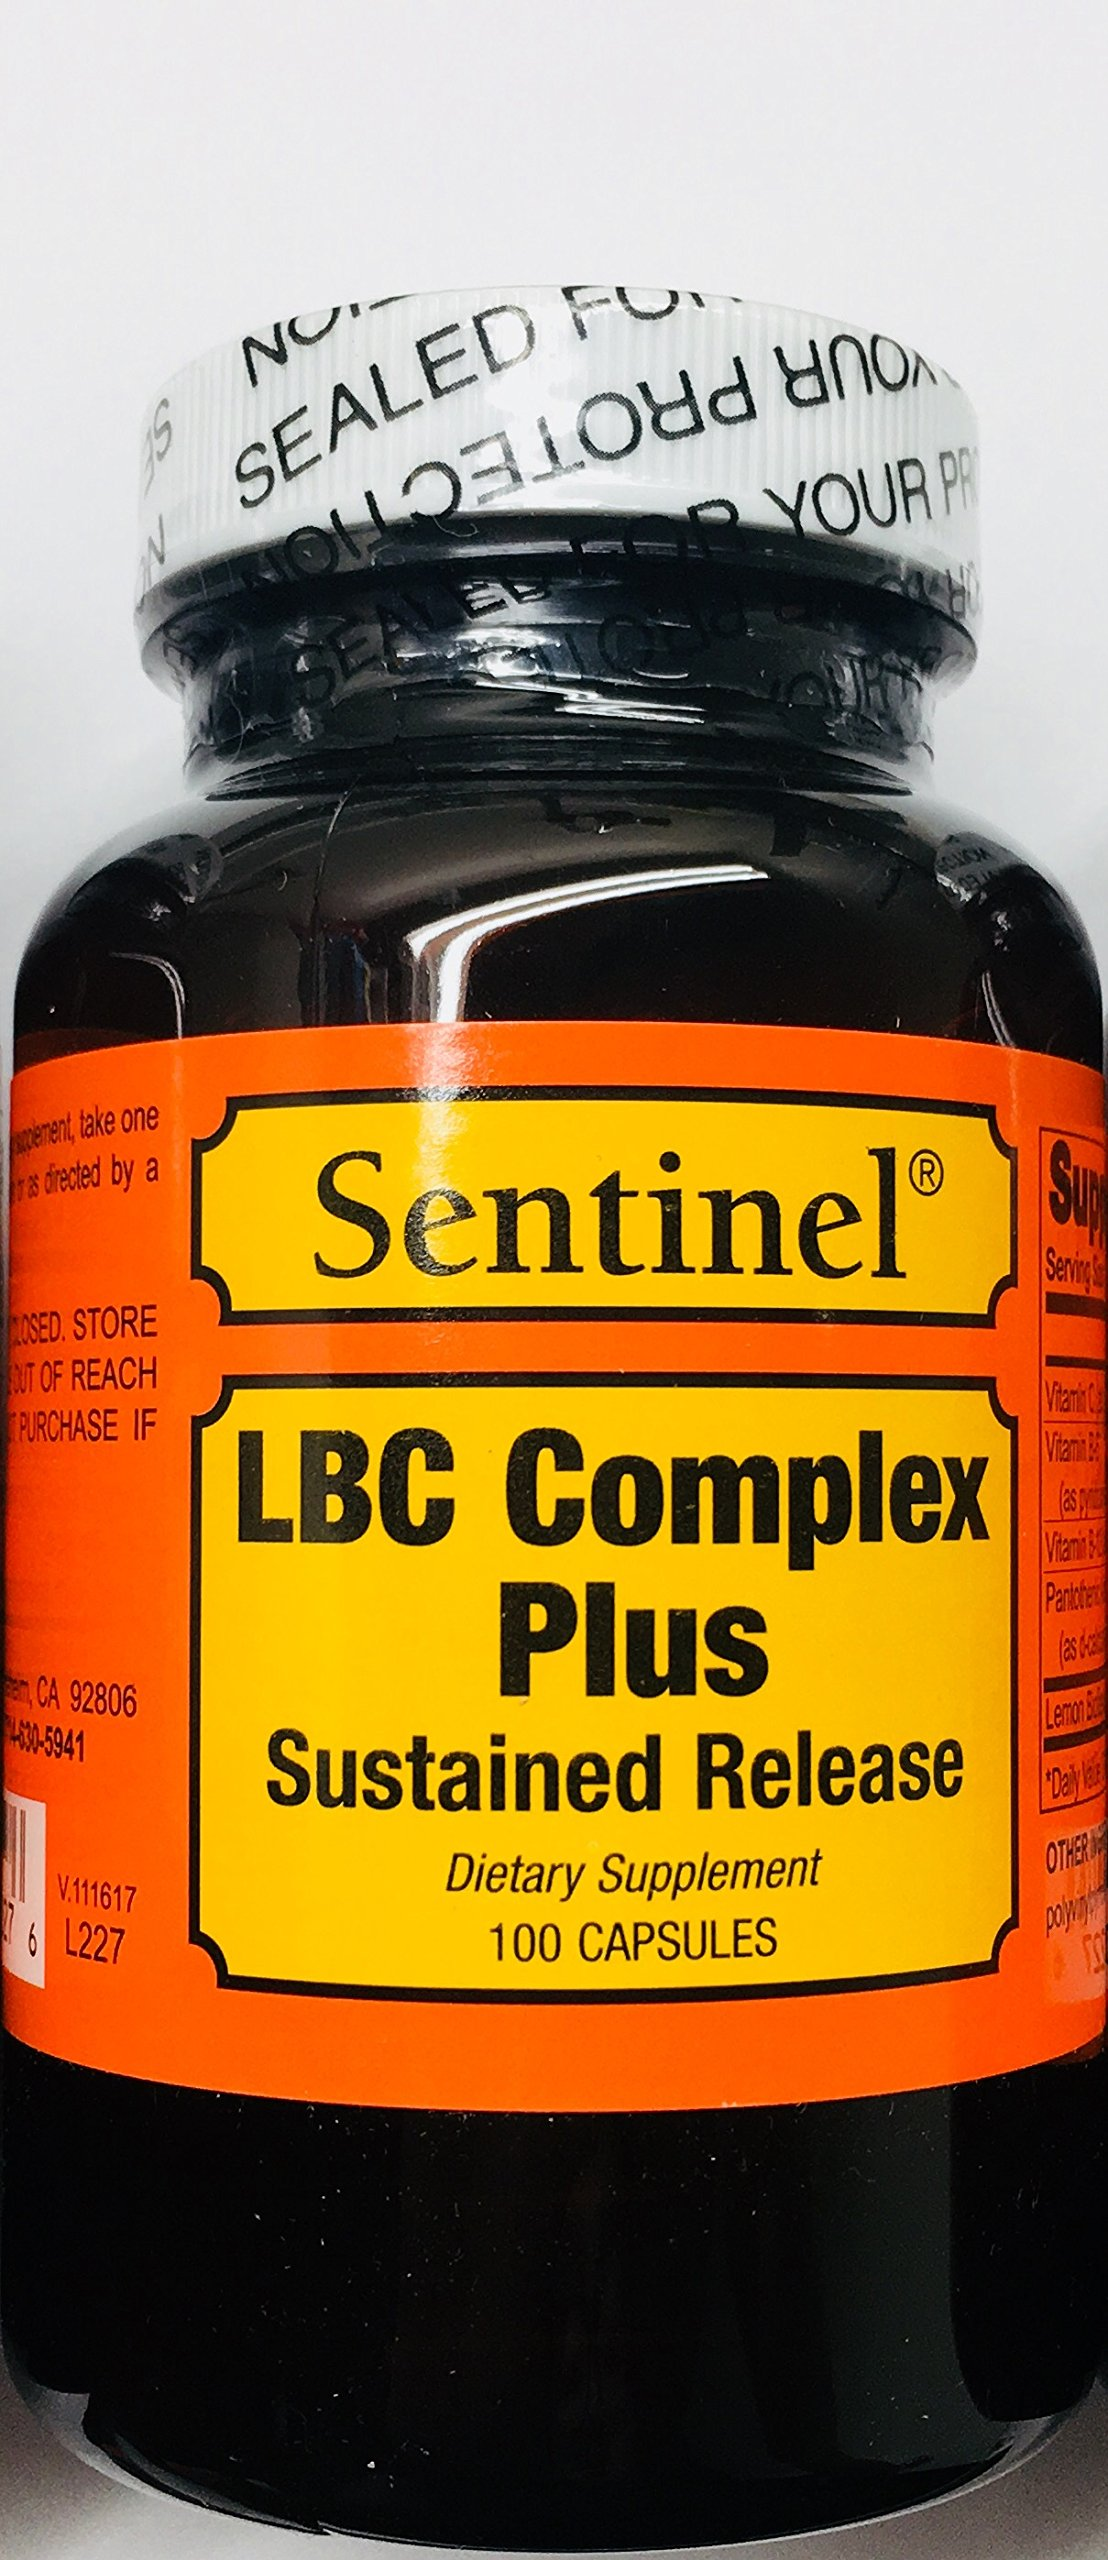 LBC Complex Sustained Release, Lemon Bio-Flavonoid Health Supplement for Relief from Ringing Ear - 100 Count Bottle - 50 Day Supply by LBC Complex Plus